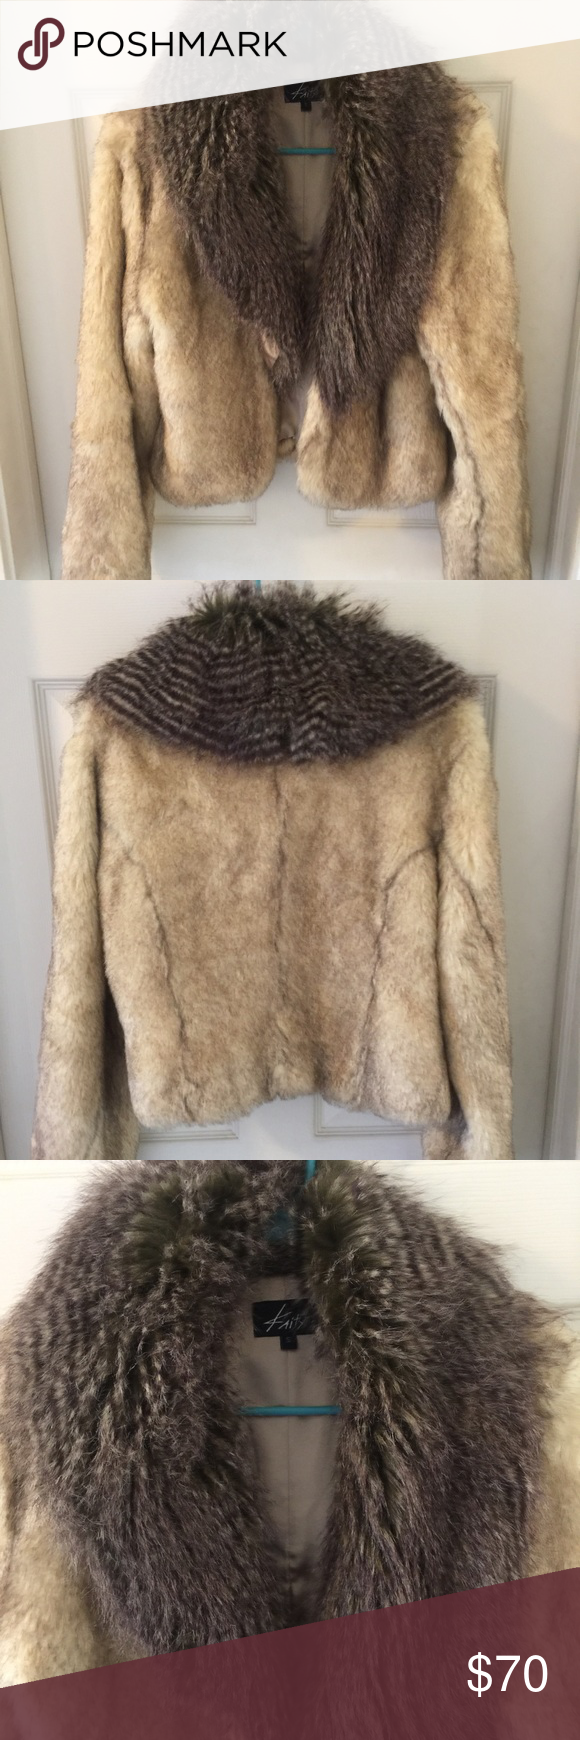 Faux Fur Coat Beautiful coat, fur very soft and plush. No signs of wear. Size S runs large. Has two hook closures. Kaity Jackets & Coats